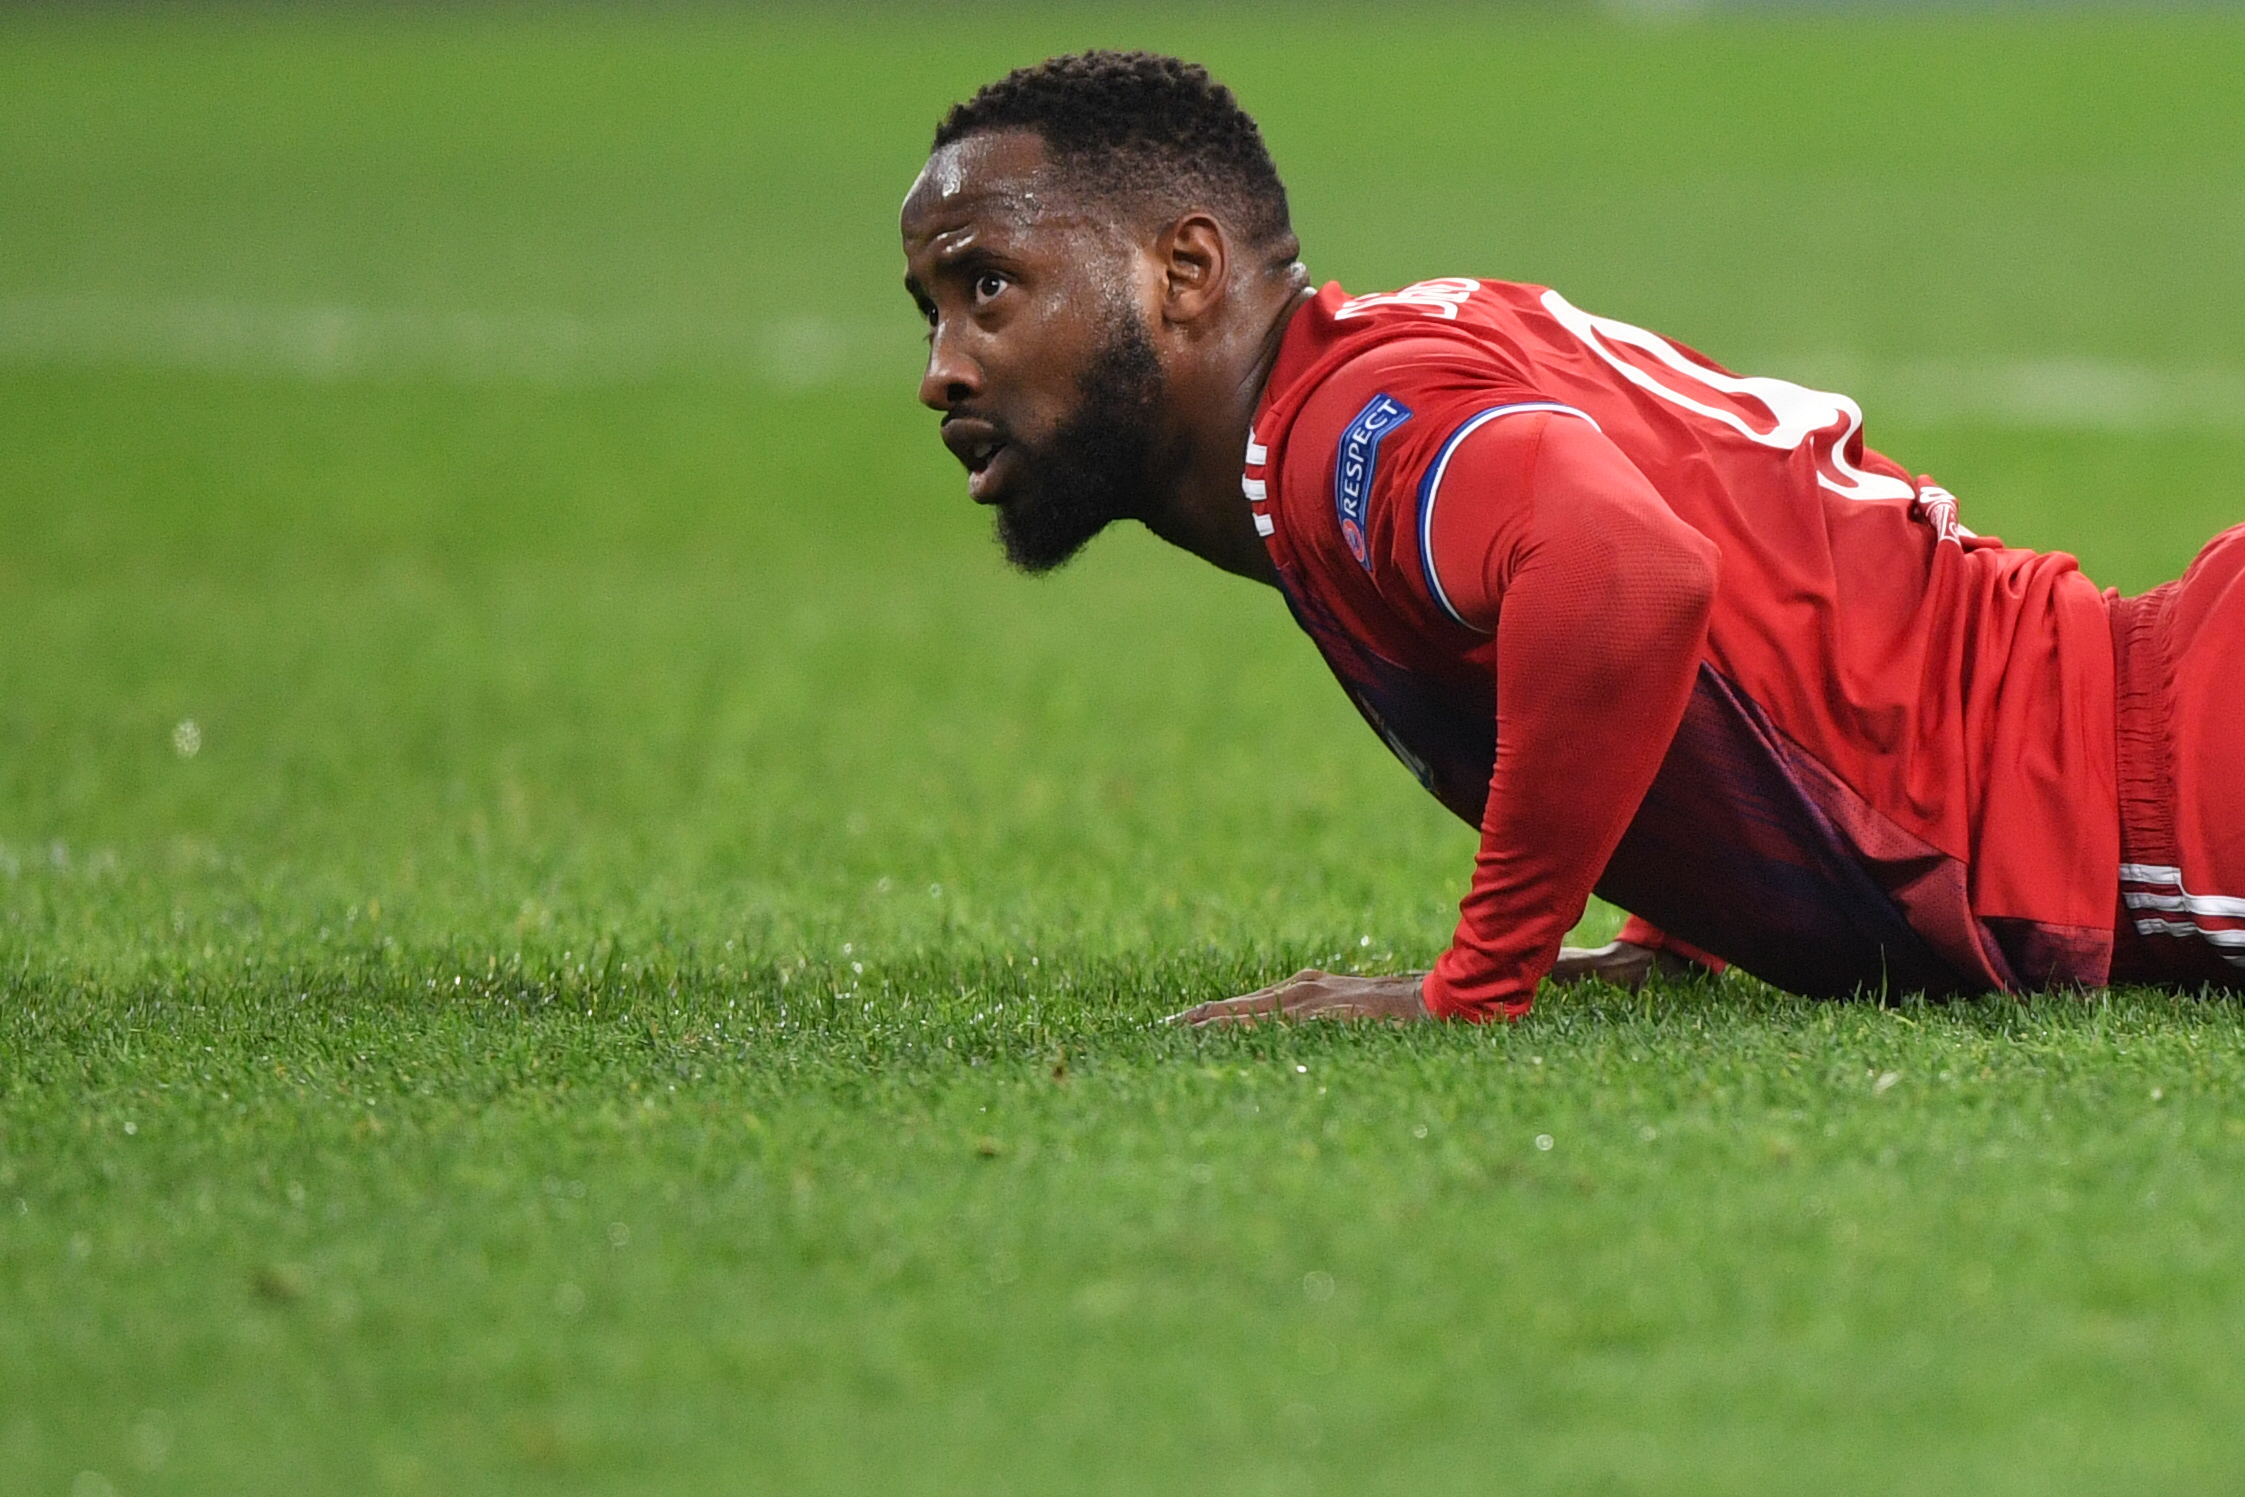 Lyon's French forward Moussa Dembele lies on the pitch during the UEFA Champions League group G football match between Zenit and Lyon at the Gazprom Arena in Saint Petersburg on November 27, 2019.